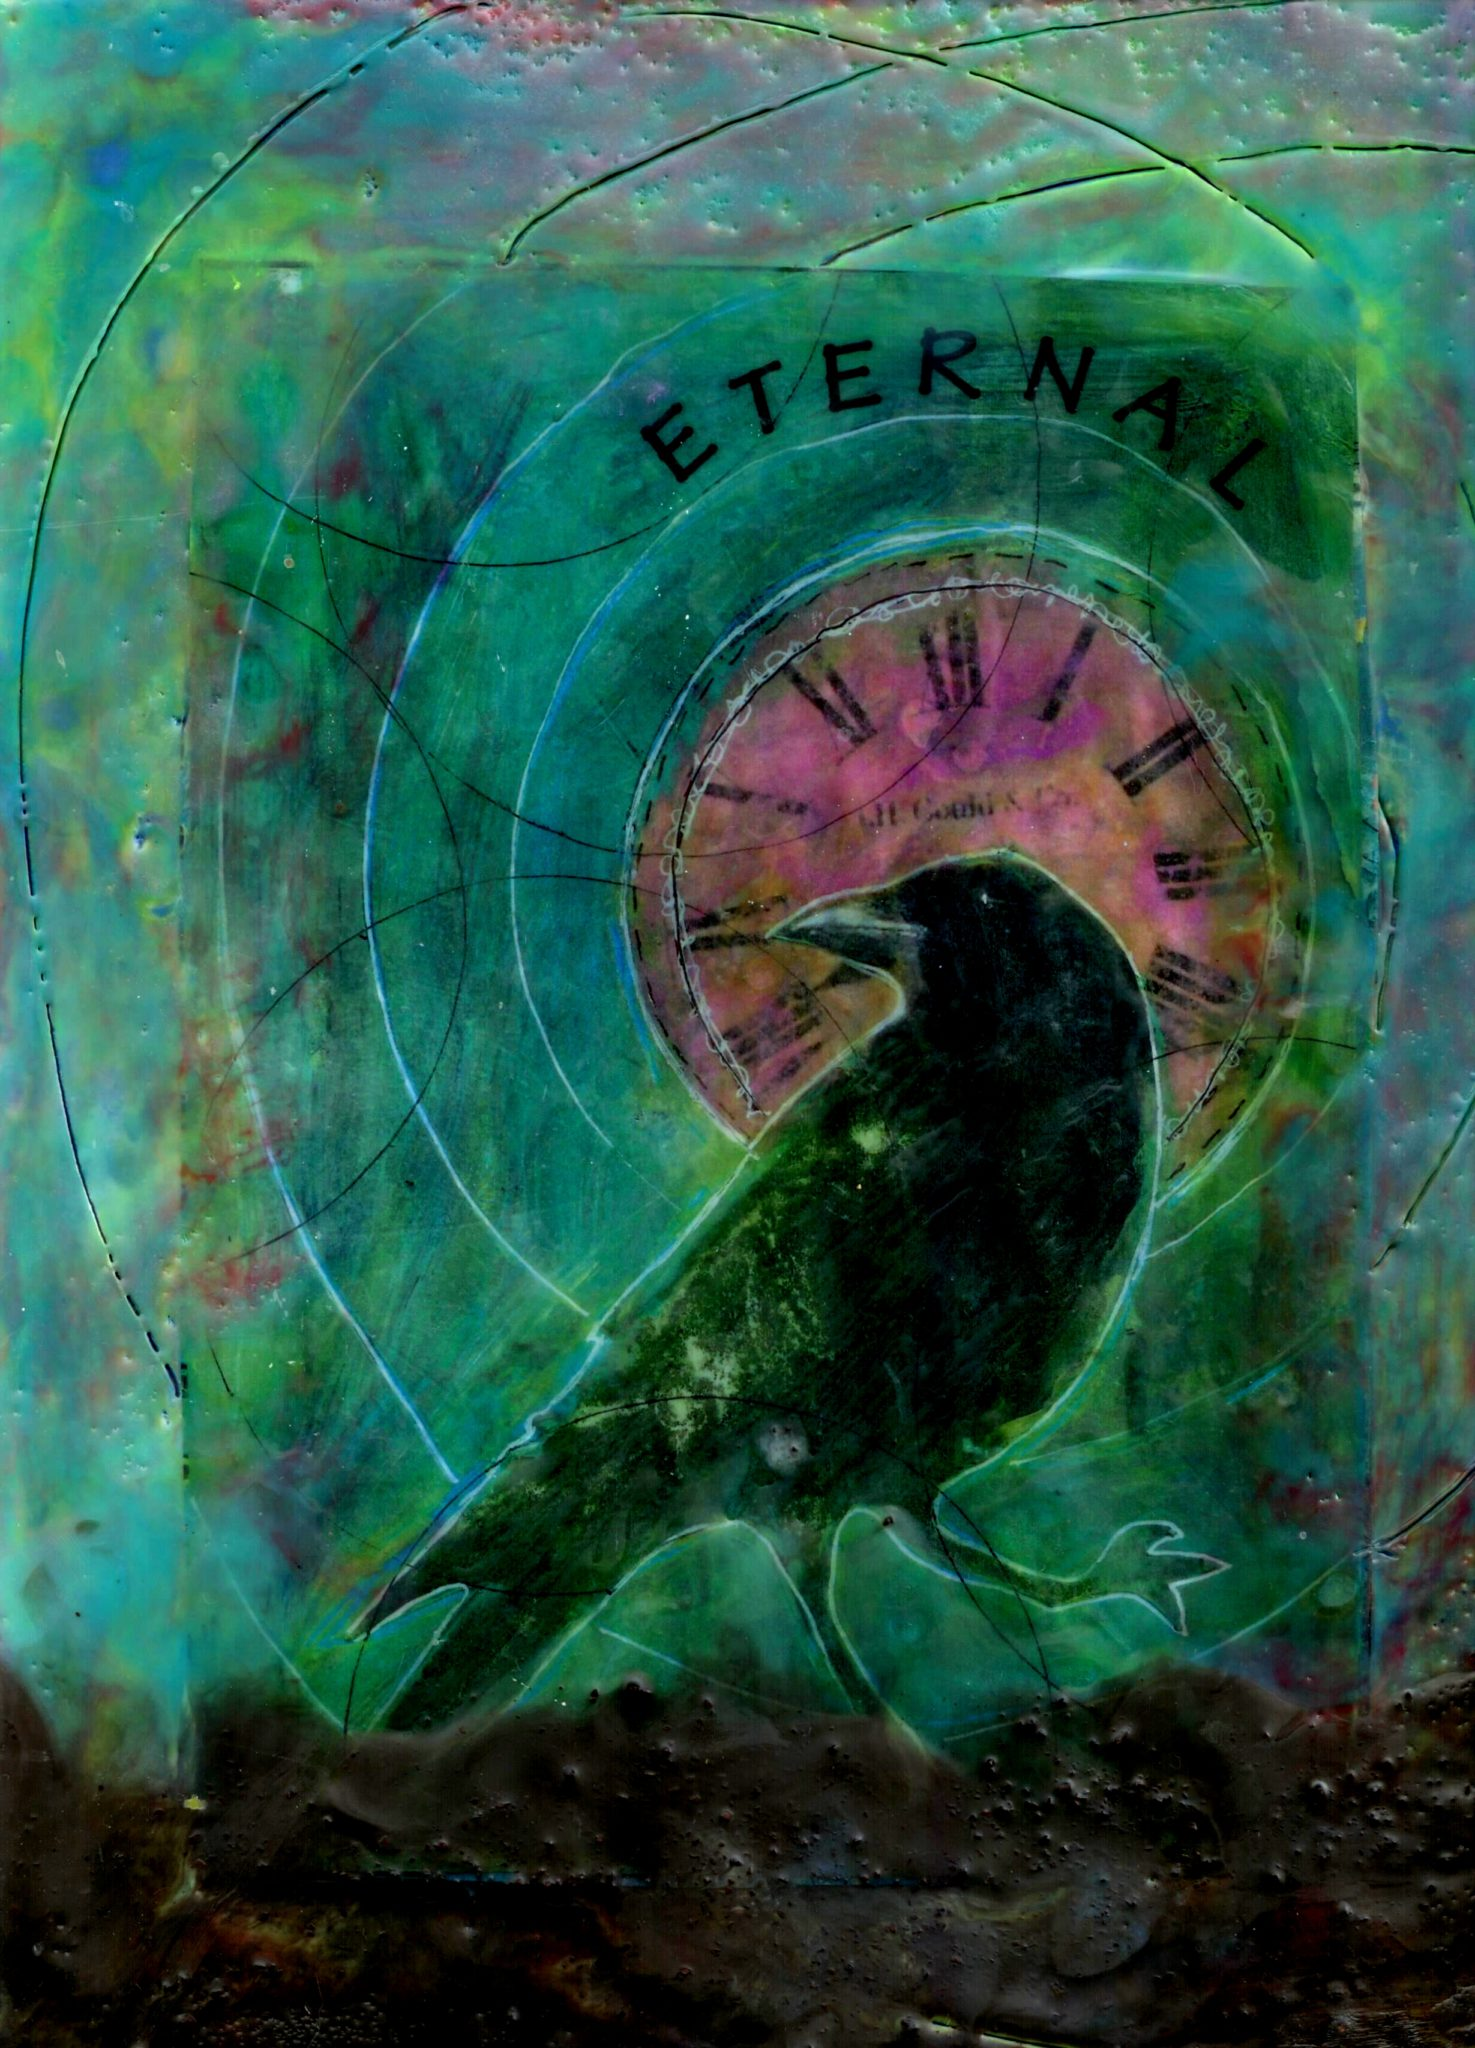 Eternal-encaustic